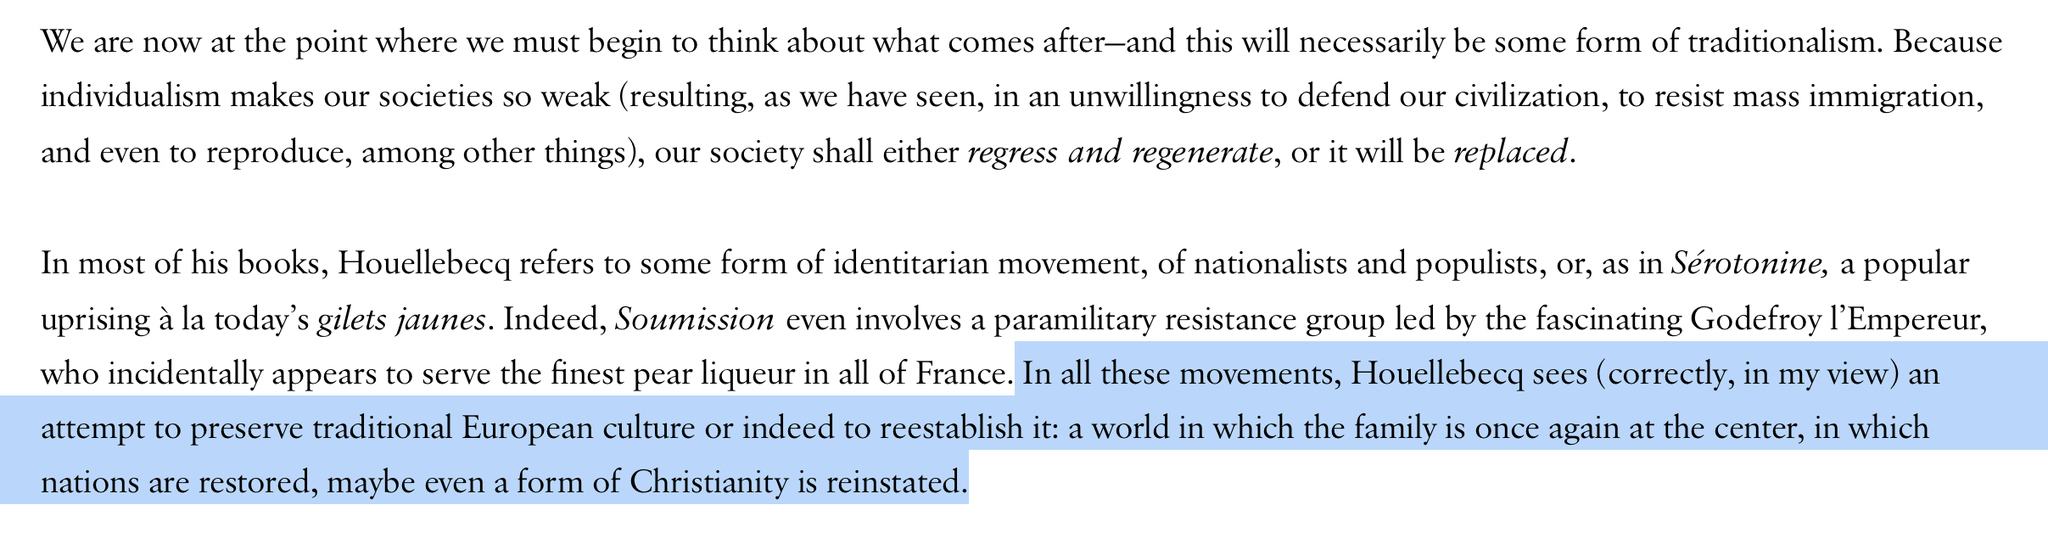 We are now at the point where we must begin to think about what comes after—and this will necessarily be some form of traditionalism. Our society shall either regress and regenerate, or it will be replaced. Houellebecq sees (correctly, in my view) an attempt to preserve traditional European culture or indeed to reestablish it: a world in which the family is once again at the center, in which nations are restored